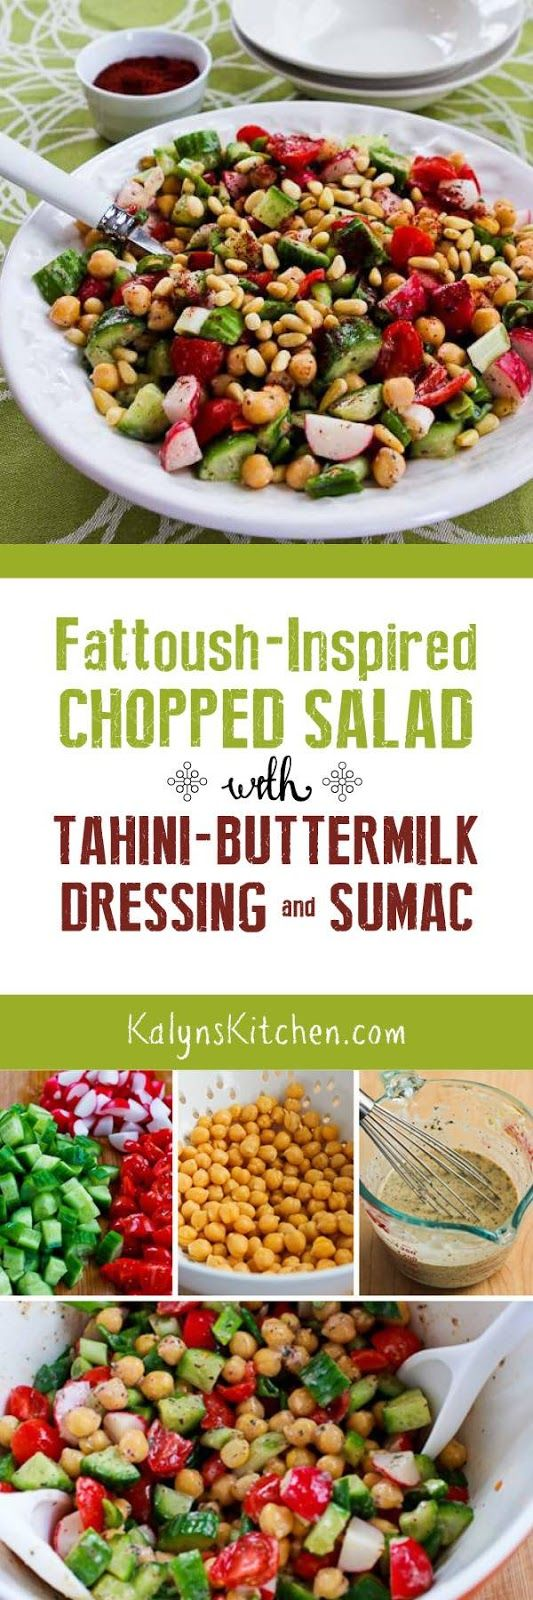 Fattoush-Inspired Chopped Salad with Tahini-Buttermilk Dressing, Sumac ...